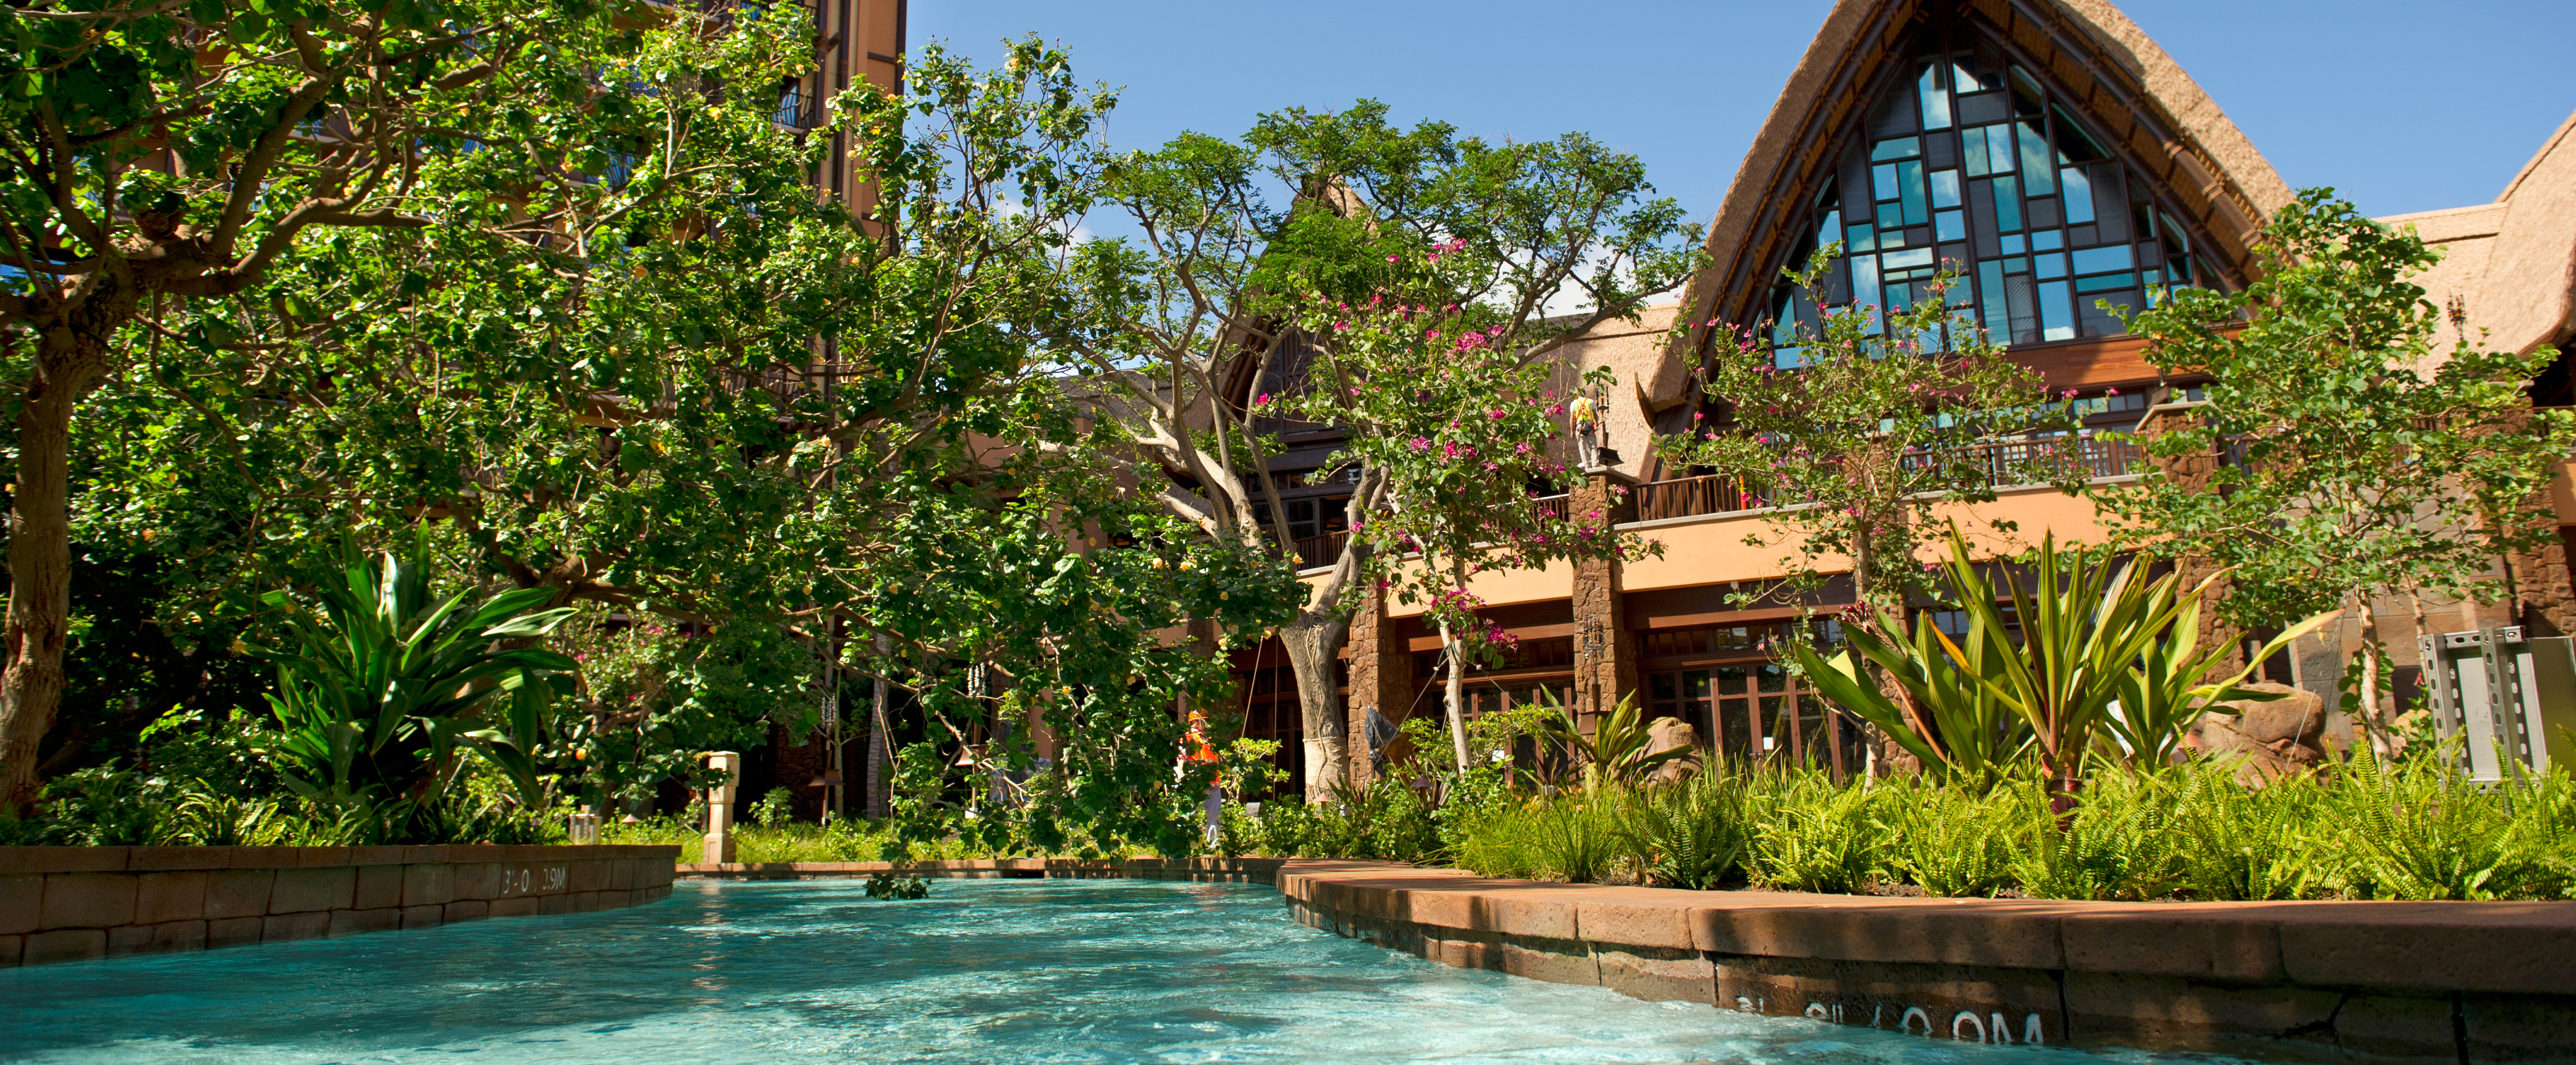 A view of the pool area in front of the Resort